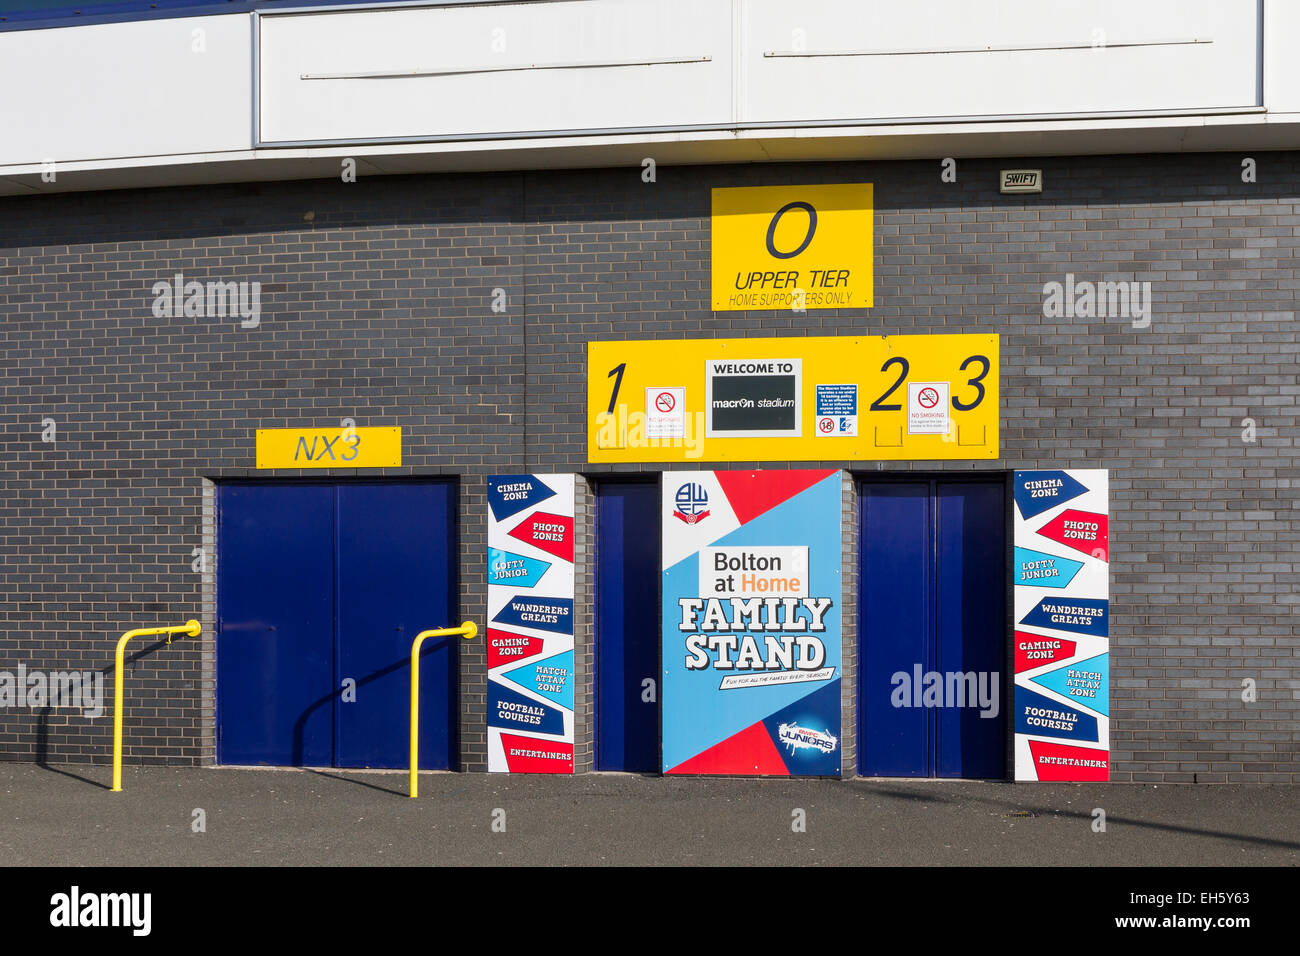 68db6c8f809a Turnstiles for the Family Stand at Bolton Wanderers Reebok Macron Stadium  in Horwich